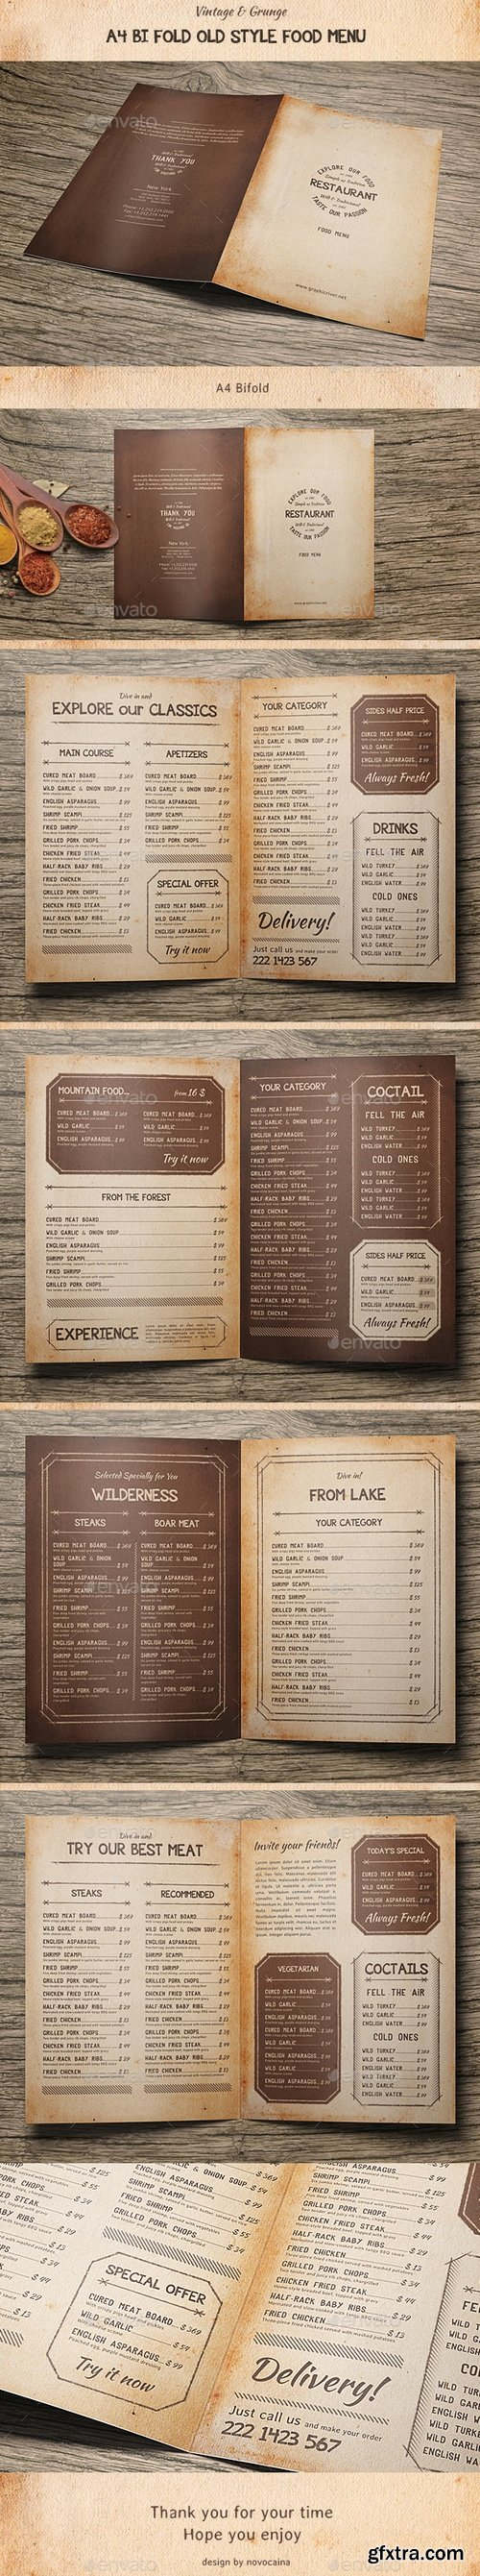 Graphicriver - Old Style A4 Bifold Food Menu 15956806